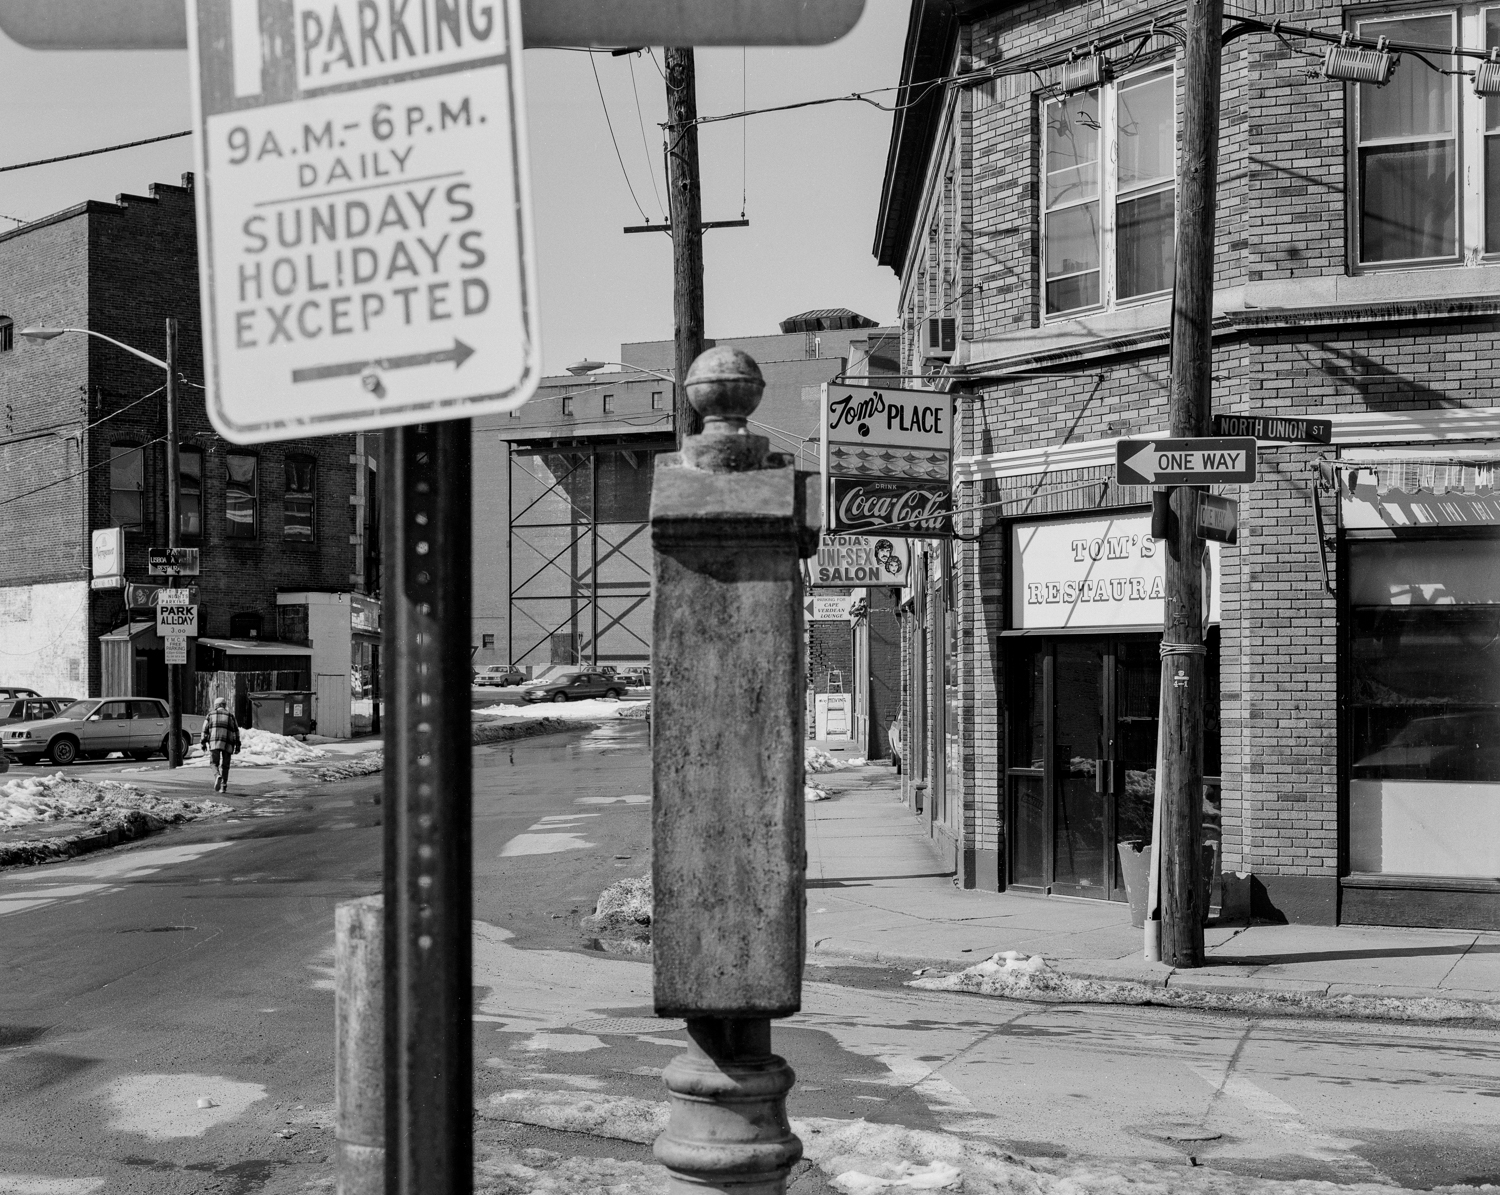 At Summer St. and North Union, downtown Pawtucket, 1994